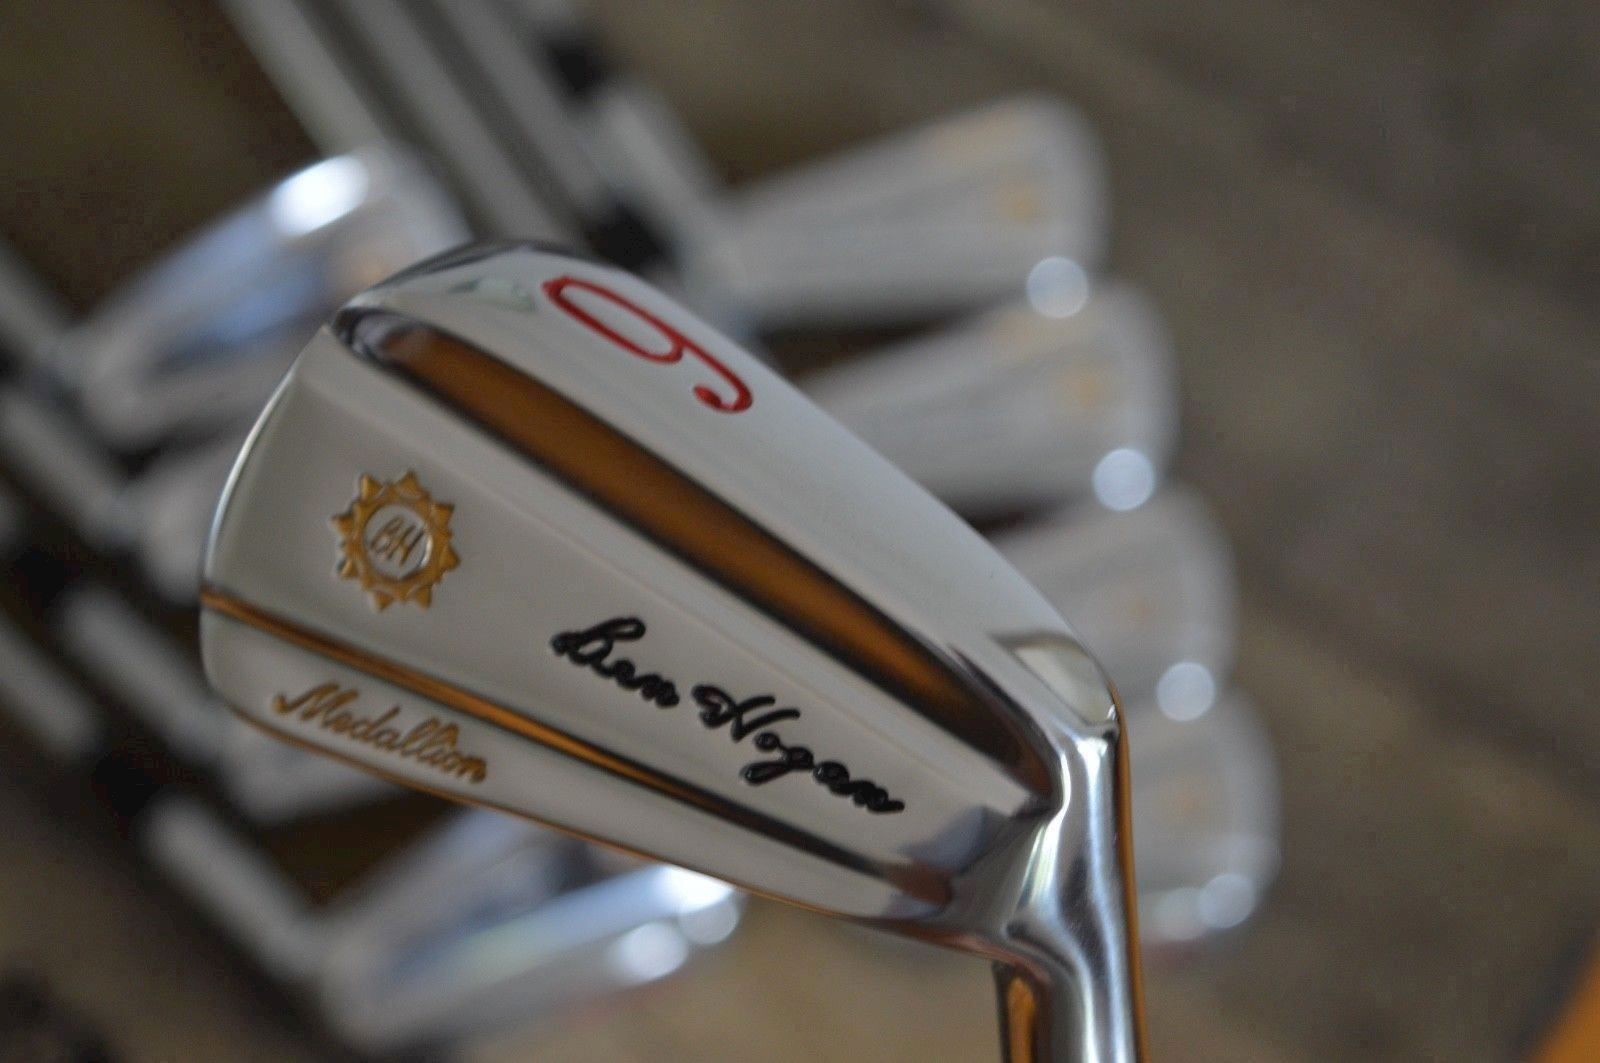 Ben Hogan forged iron set - 2/E - 1982 Apex Medallion refurbished to mint and ready for play